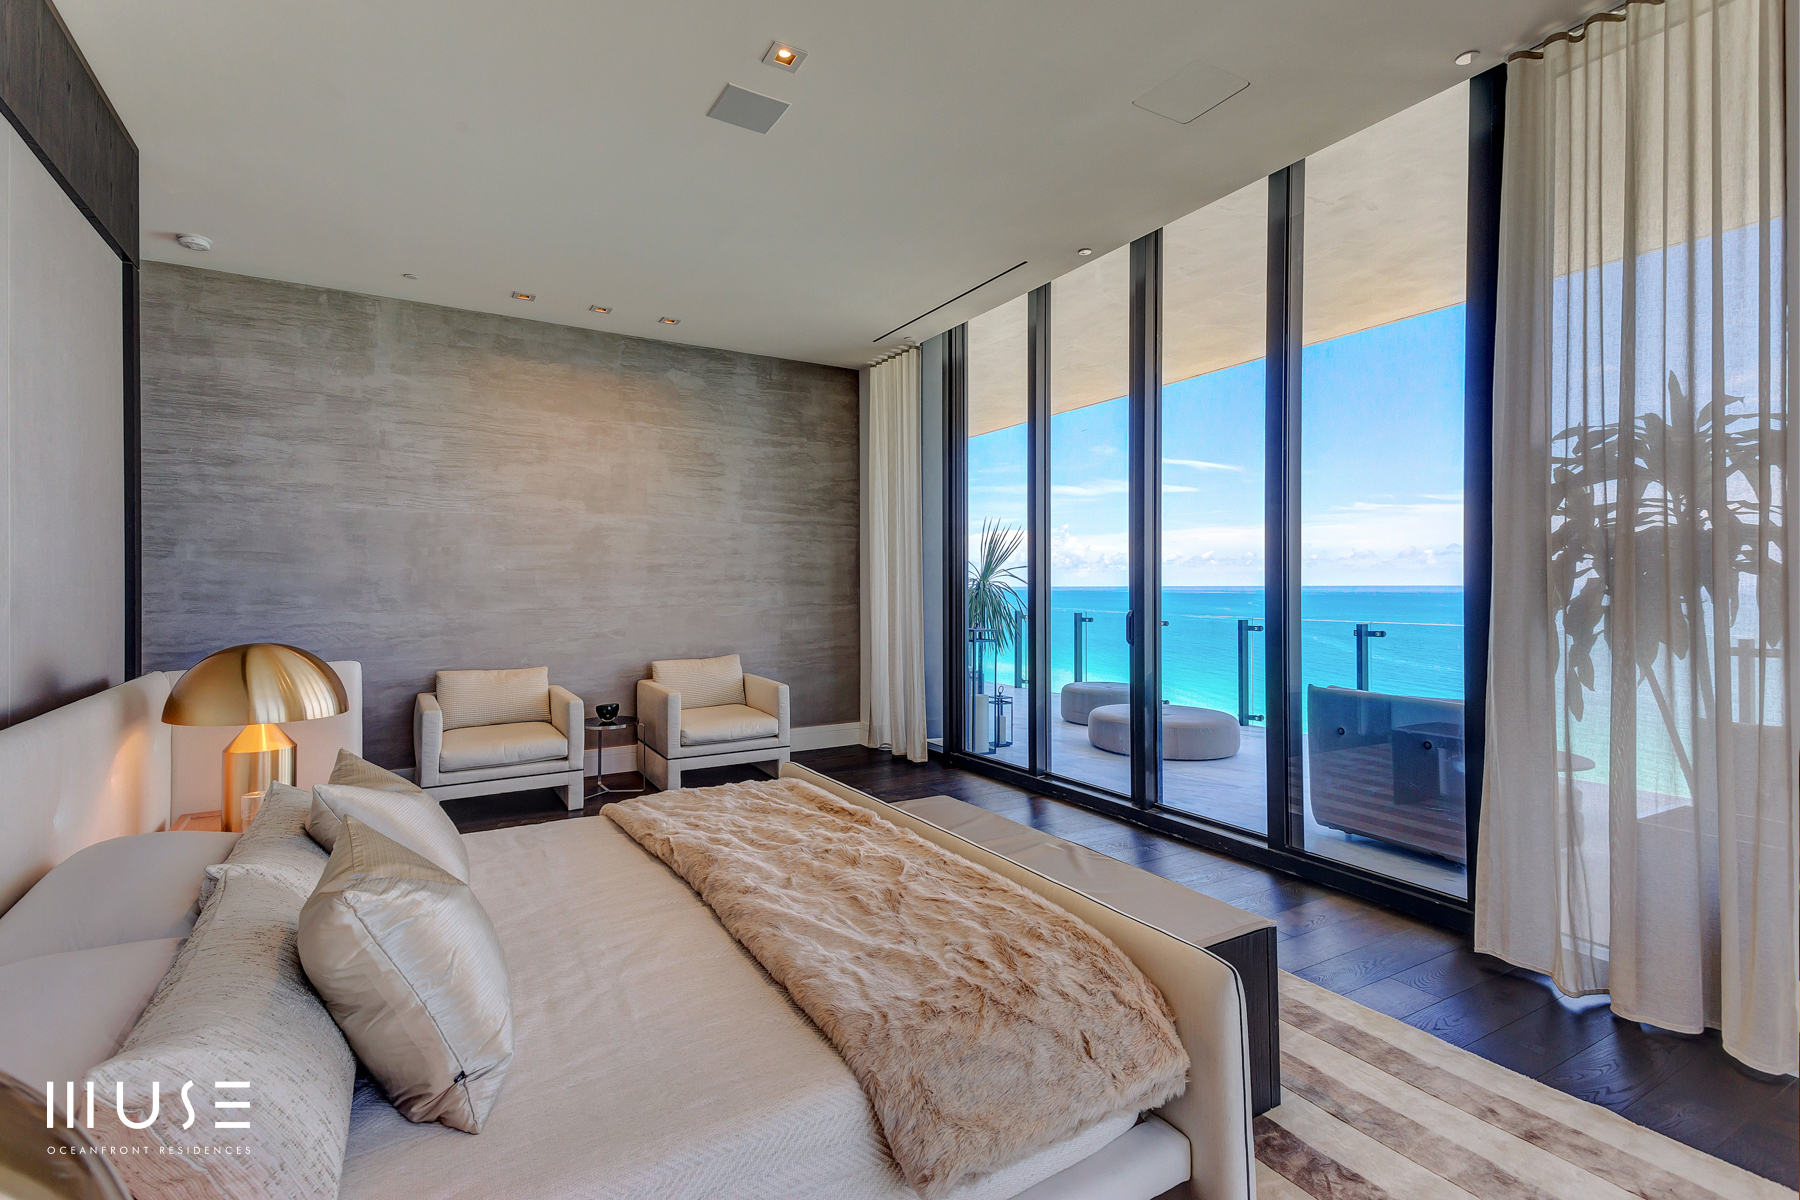 MUSE_Residence-1201_Master-Bedroom-2